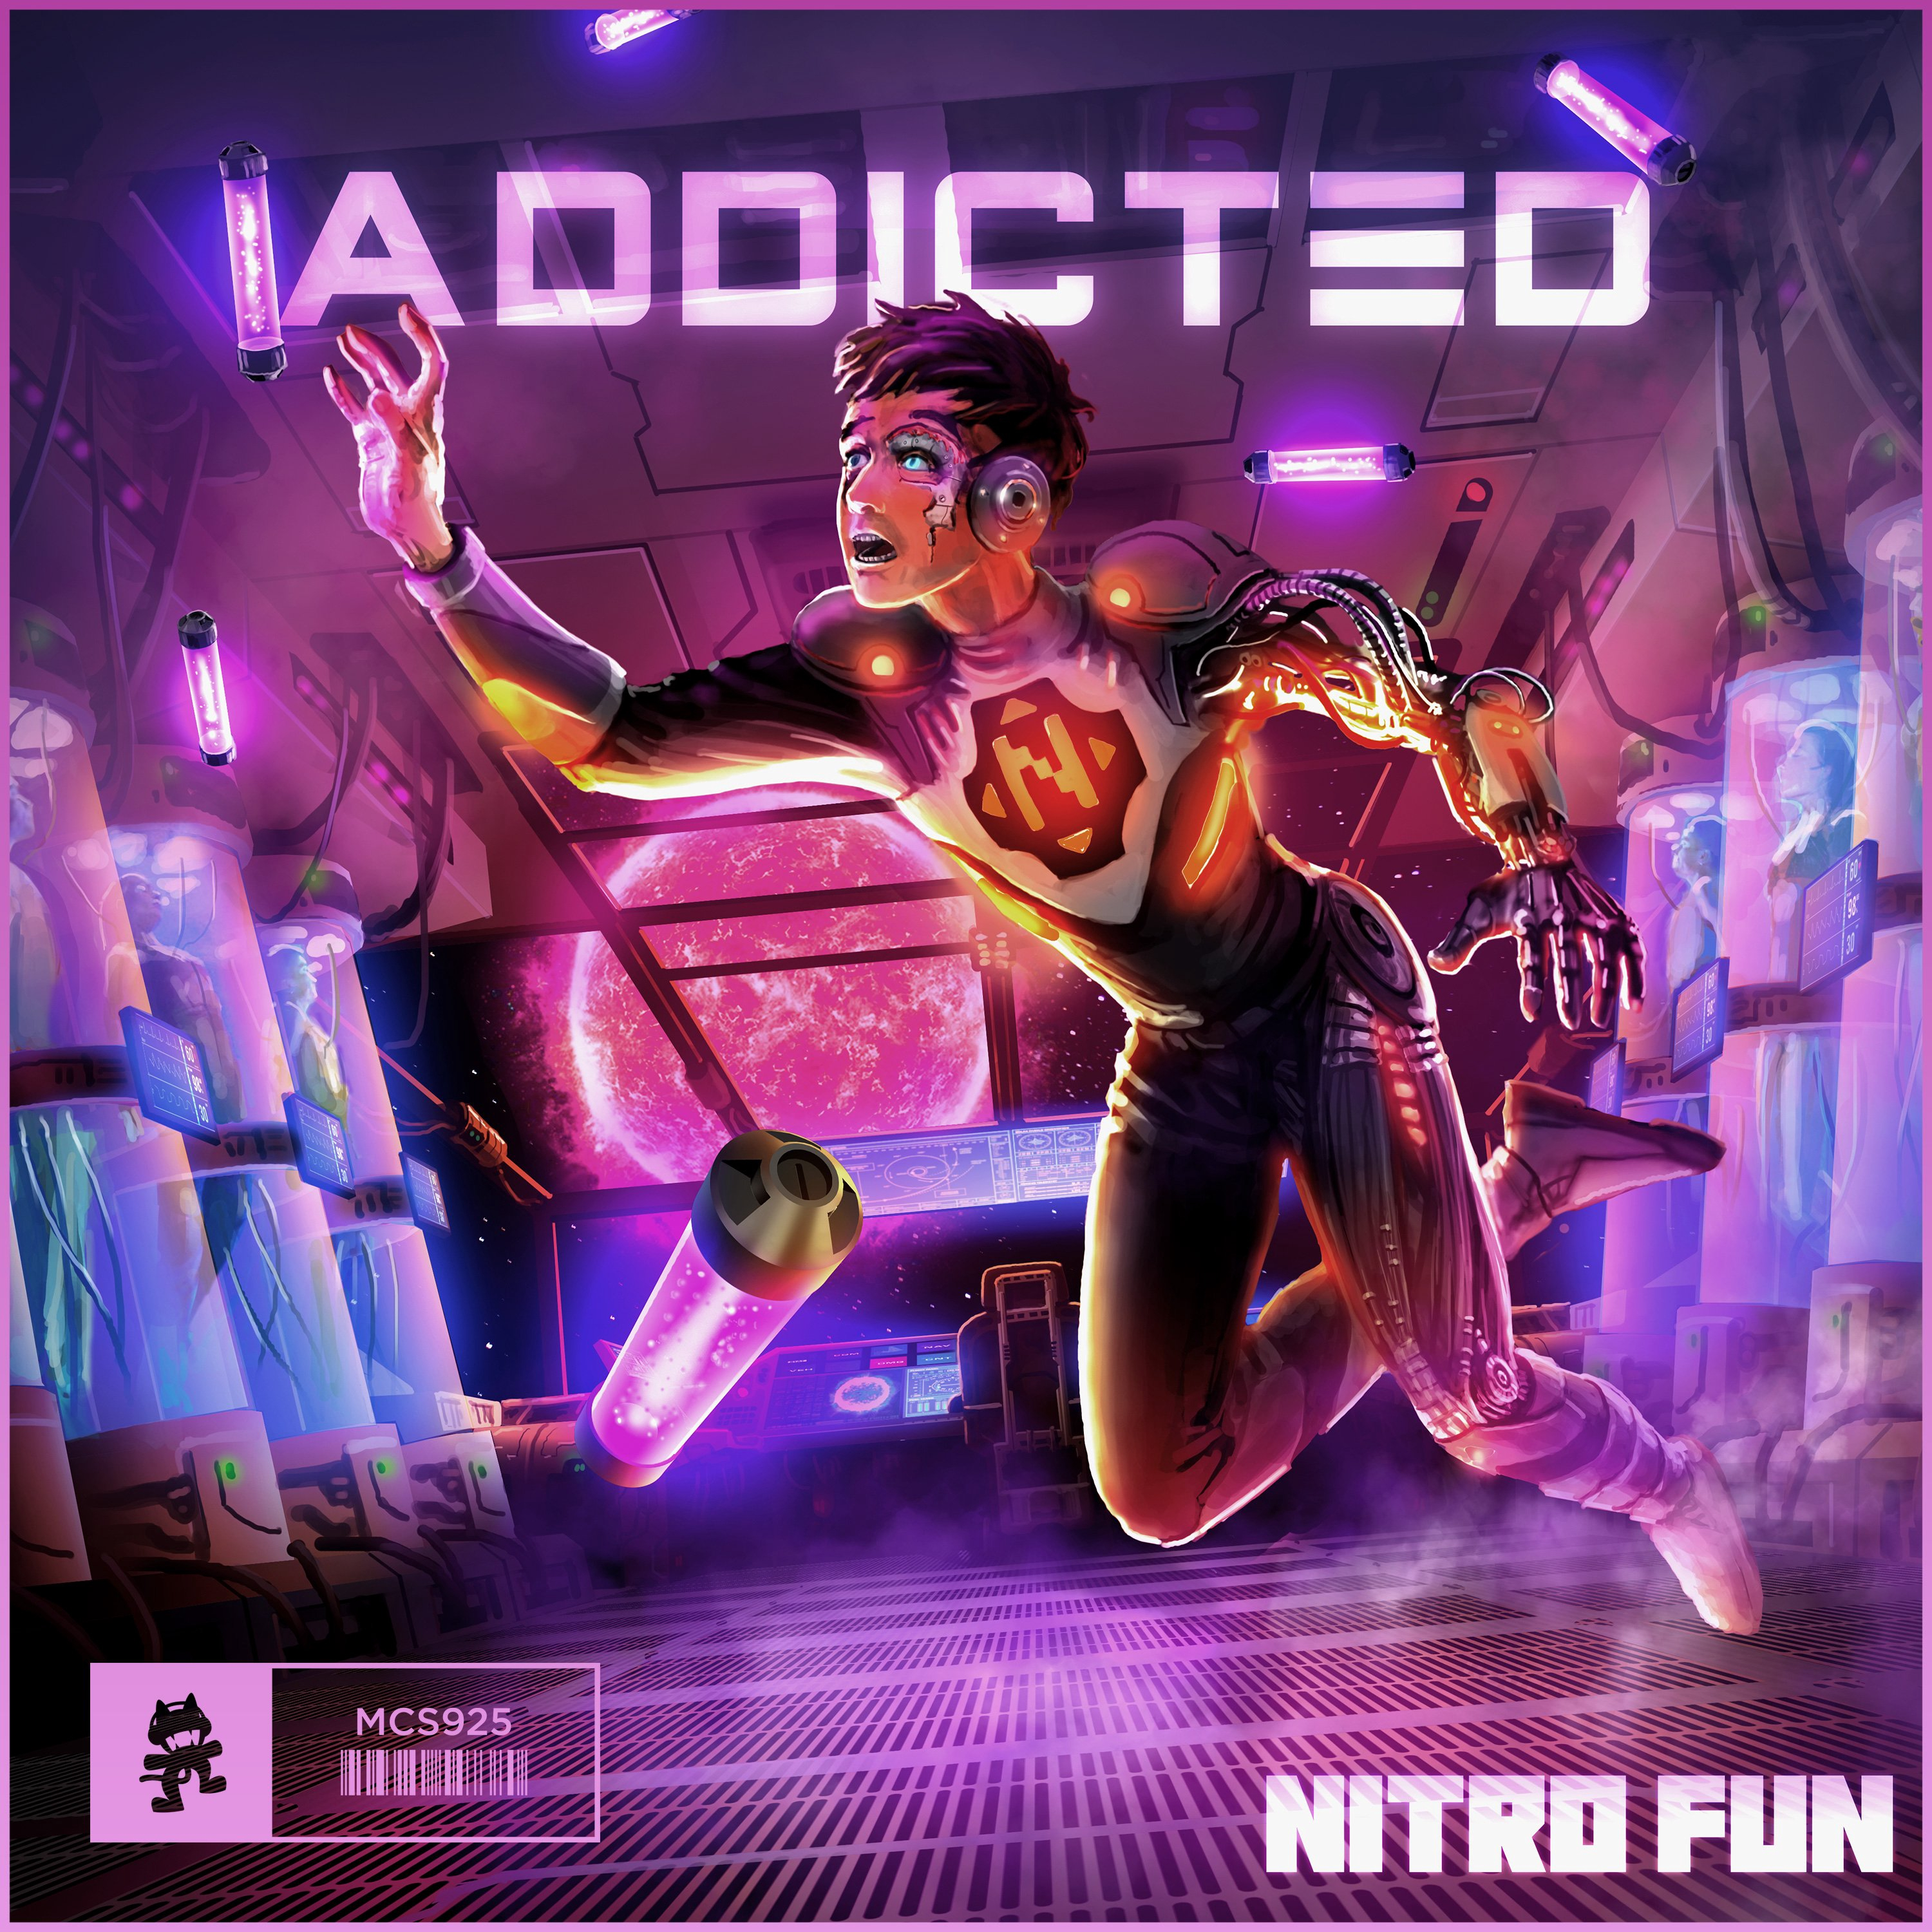 Addicted (Nitro Fun)